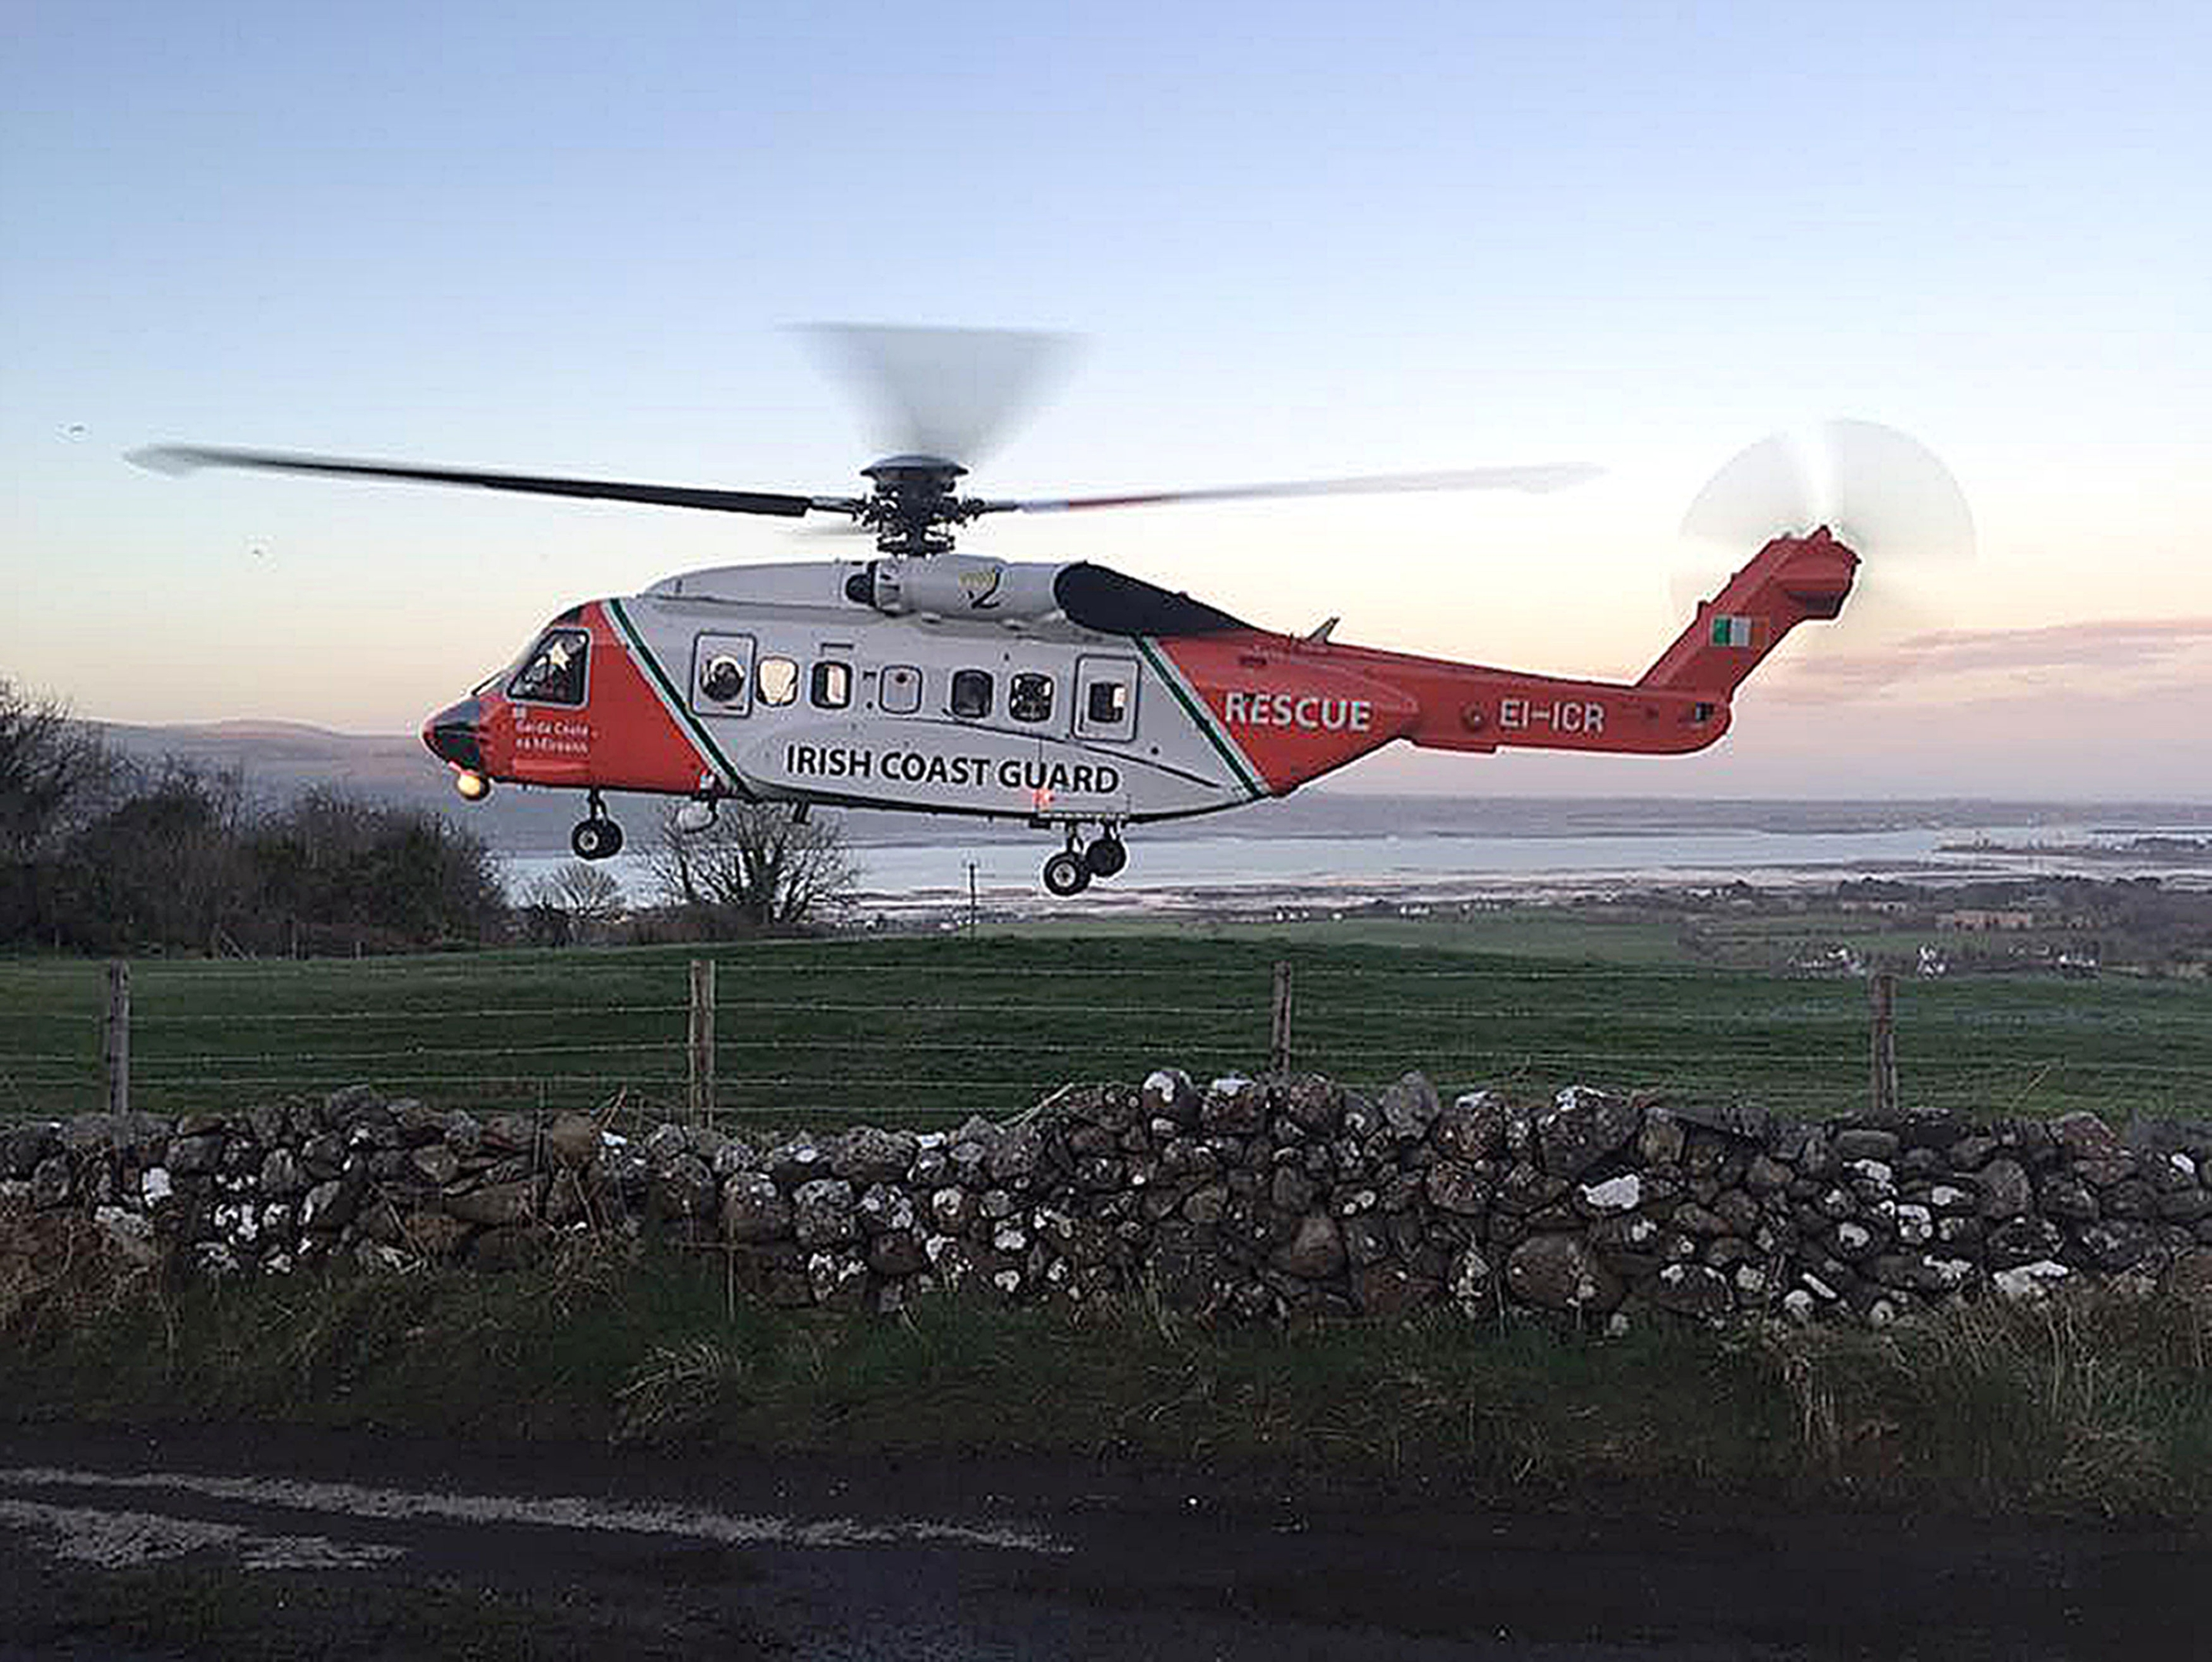 The S92 that crashed off Ireland